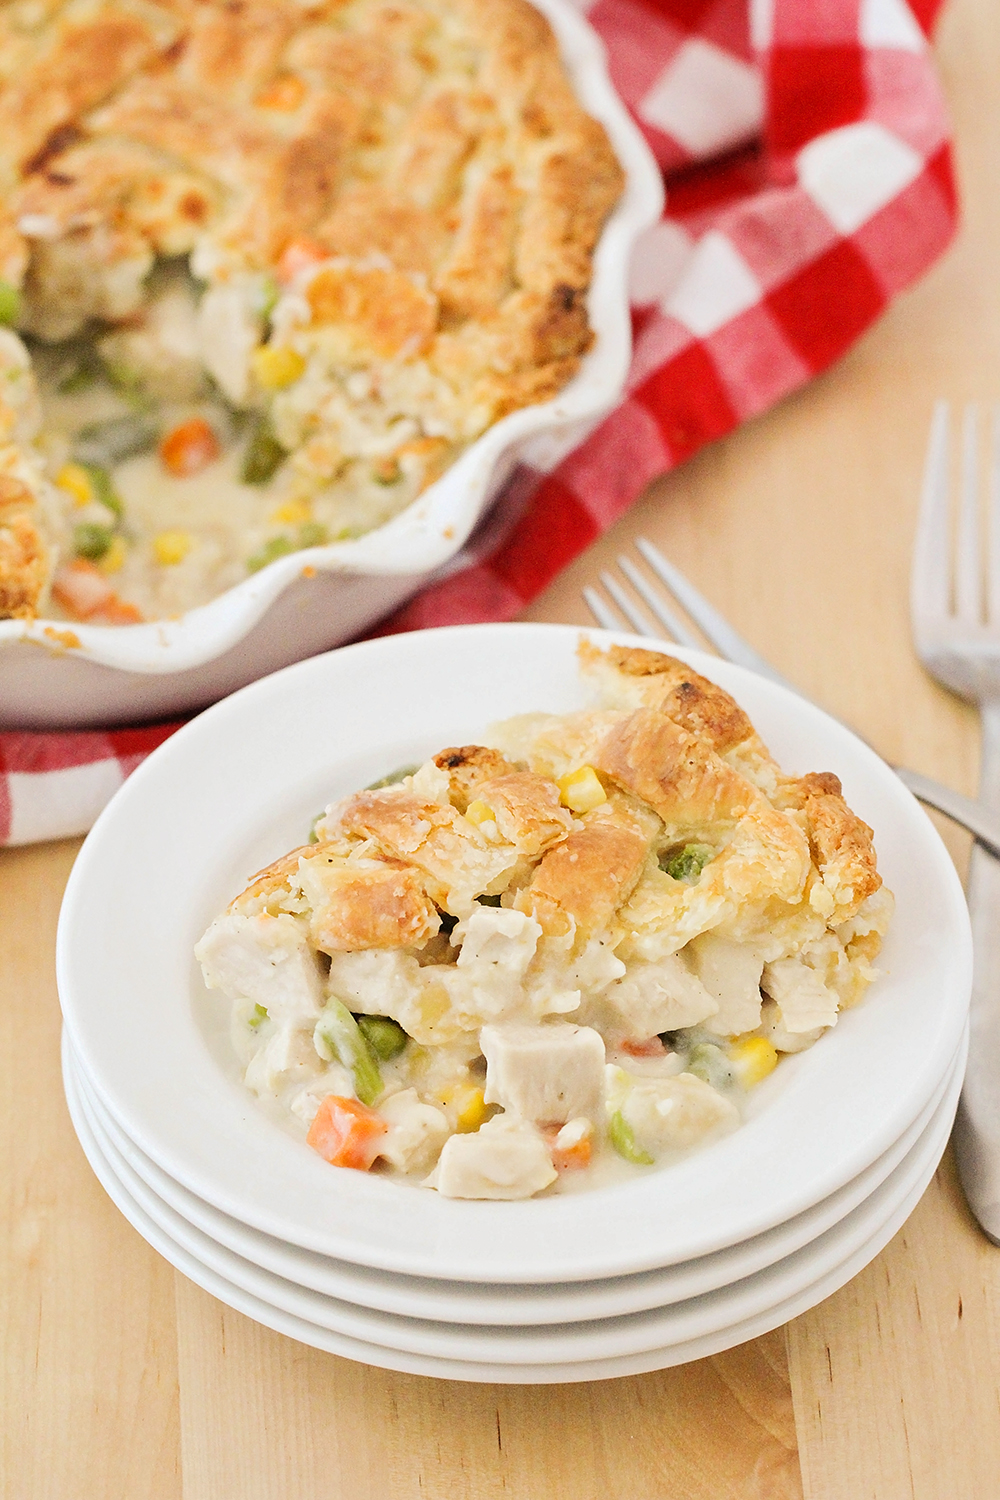 This delicious and savory from scratch chicken pot pie is comfort food at its best!